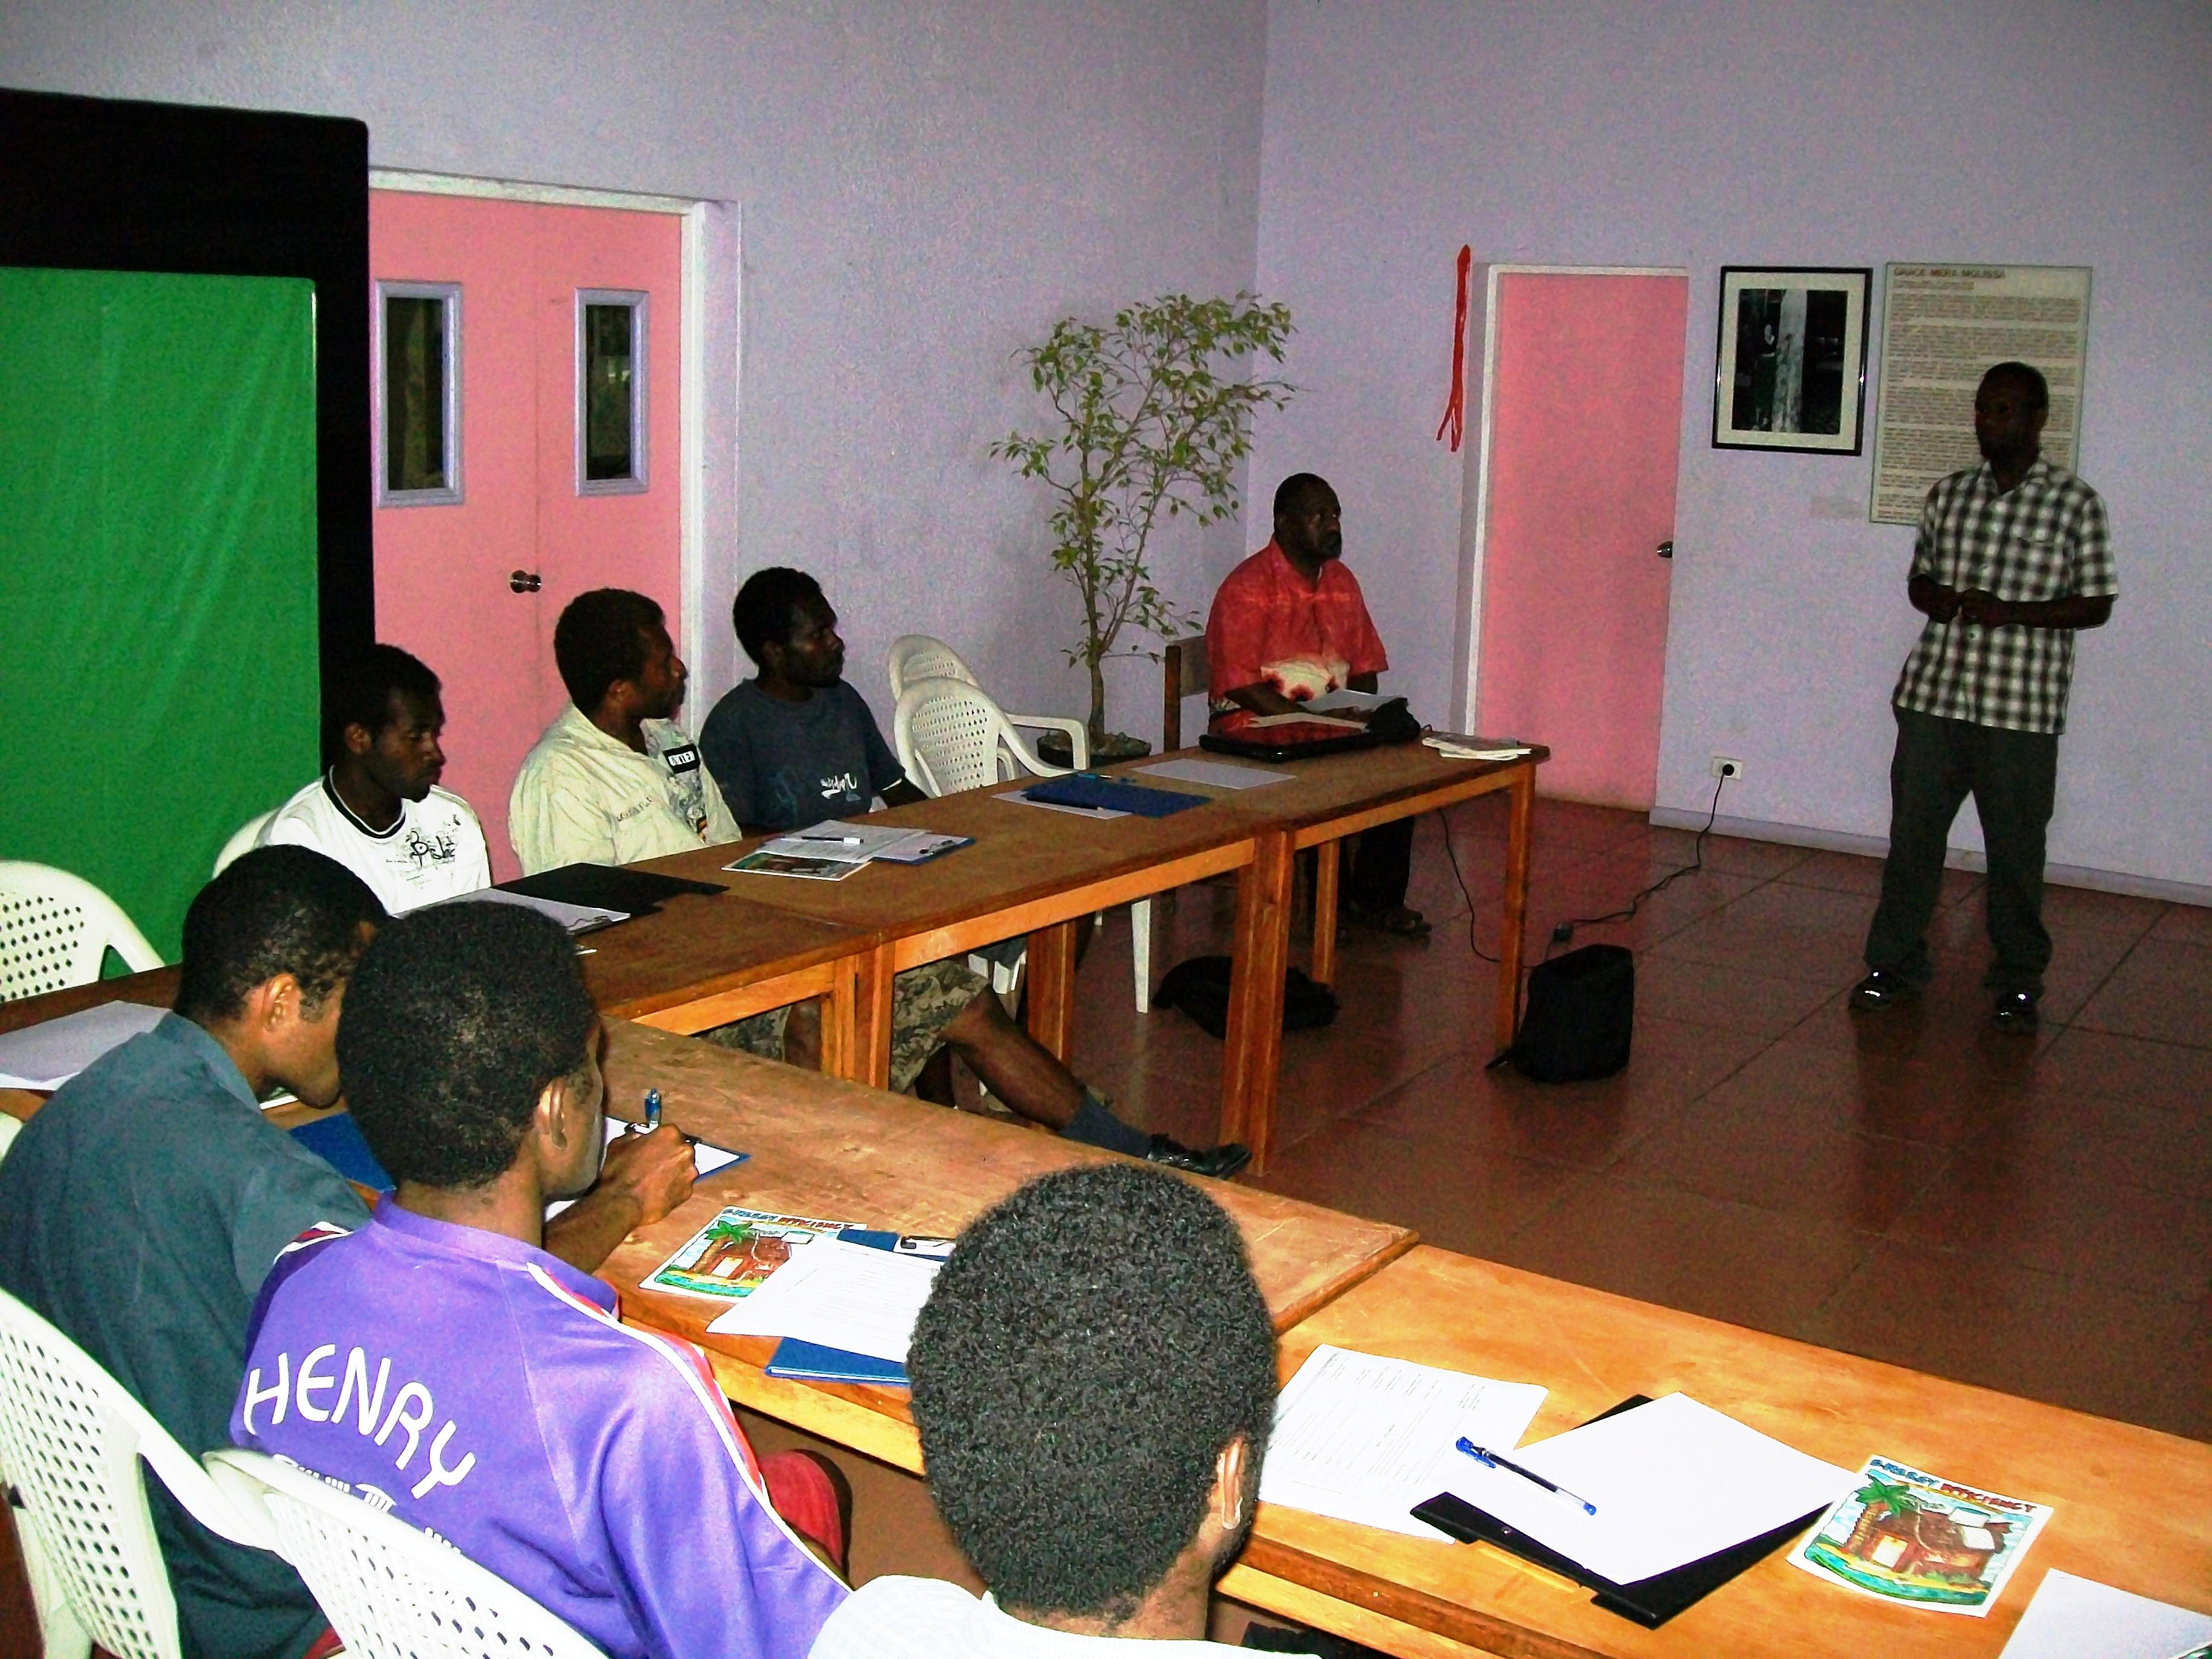 Participants of the Energy Efficiency Workshop listening to a presentation by an Energy Unit Officer.